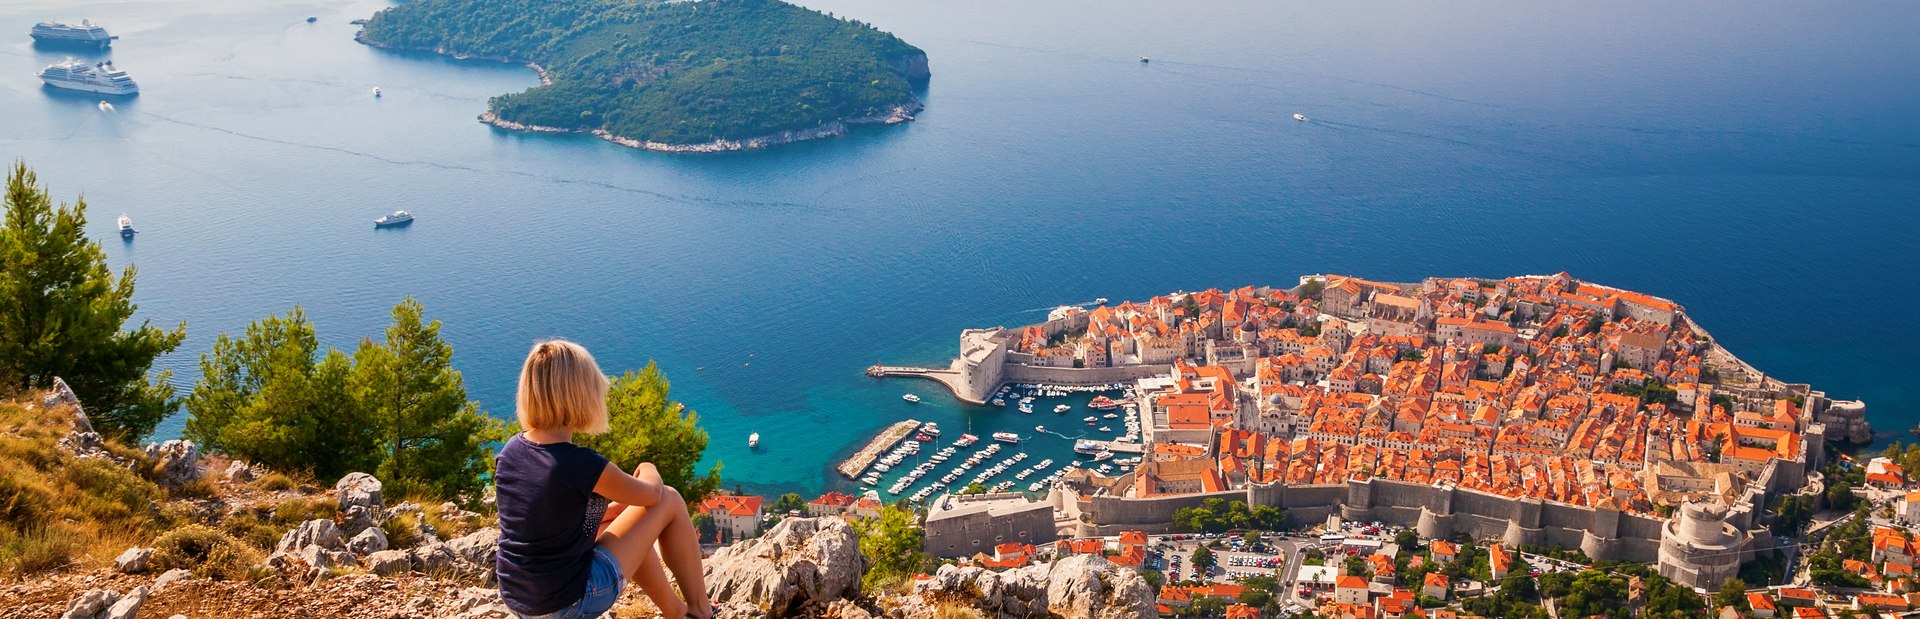 Things to see & do inCroatia